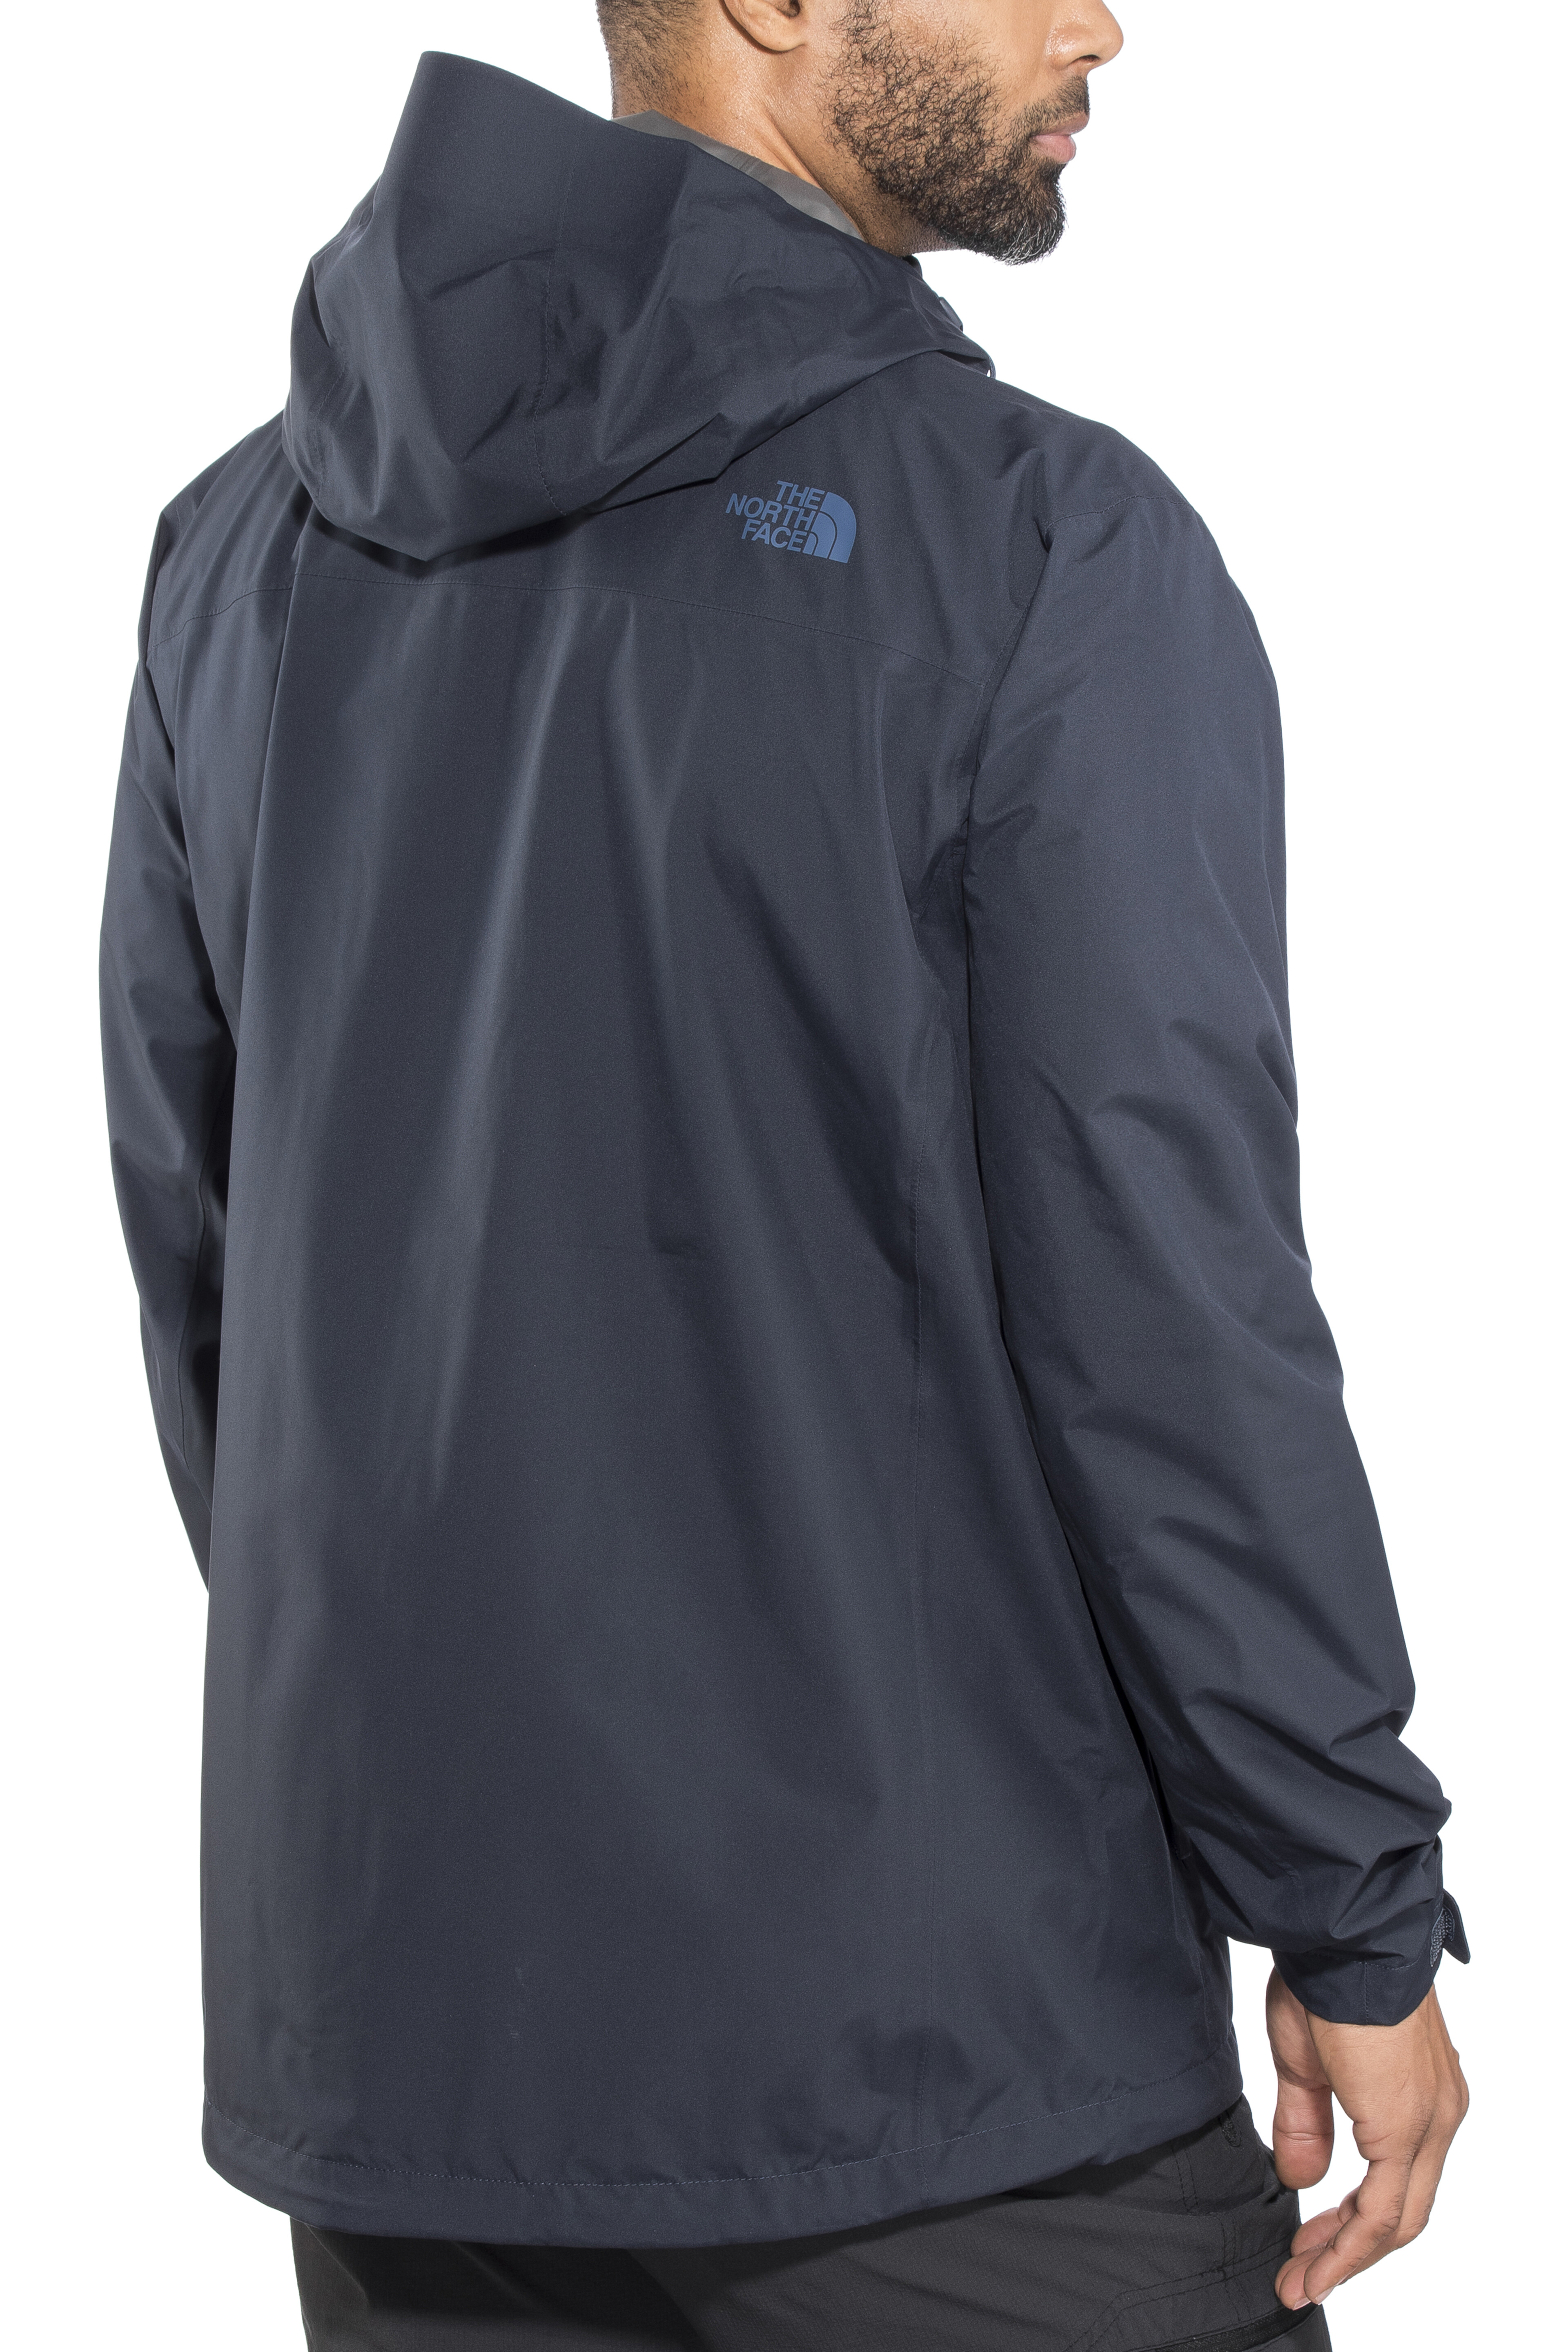 The North Face Dryzzle - Veste Homme - bleu sur CAMPZ ! 12b8de2c6526